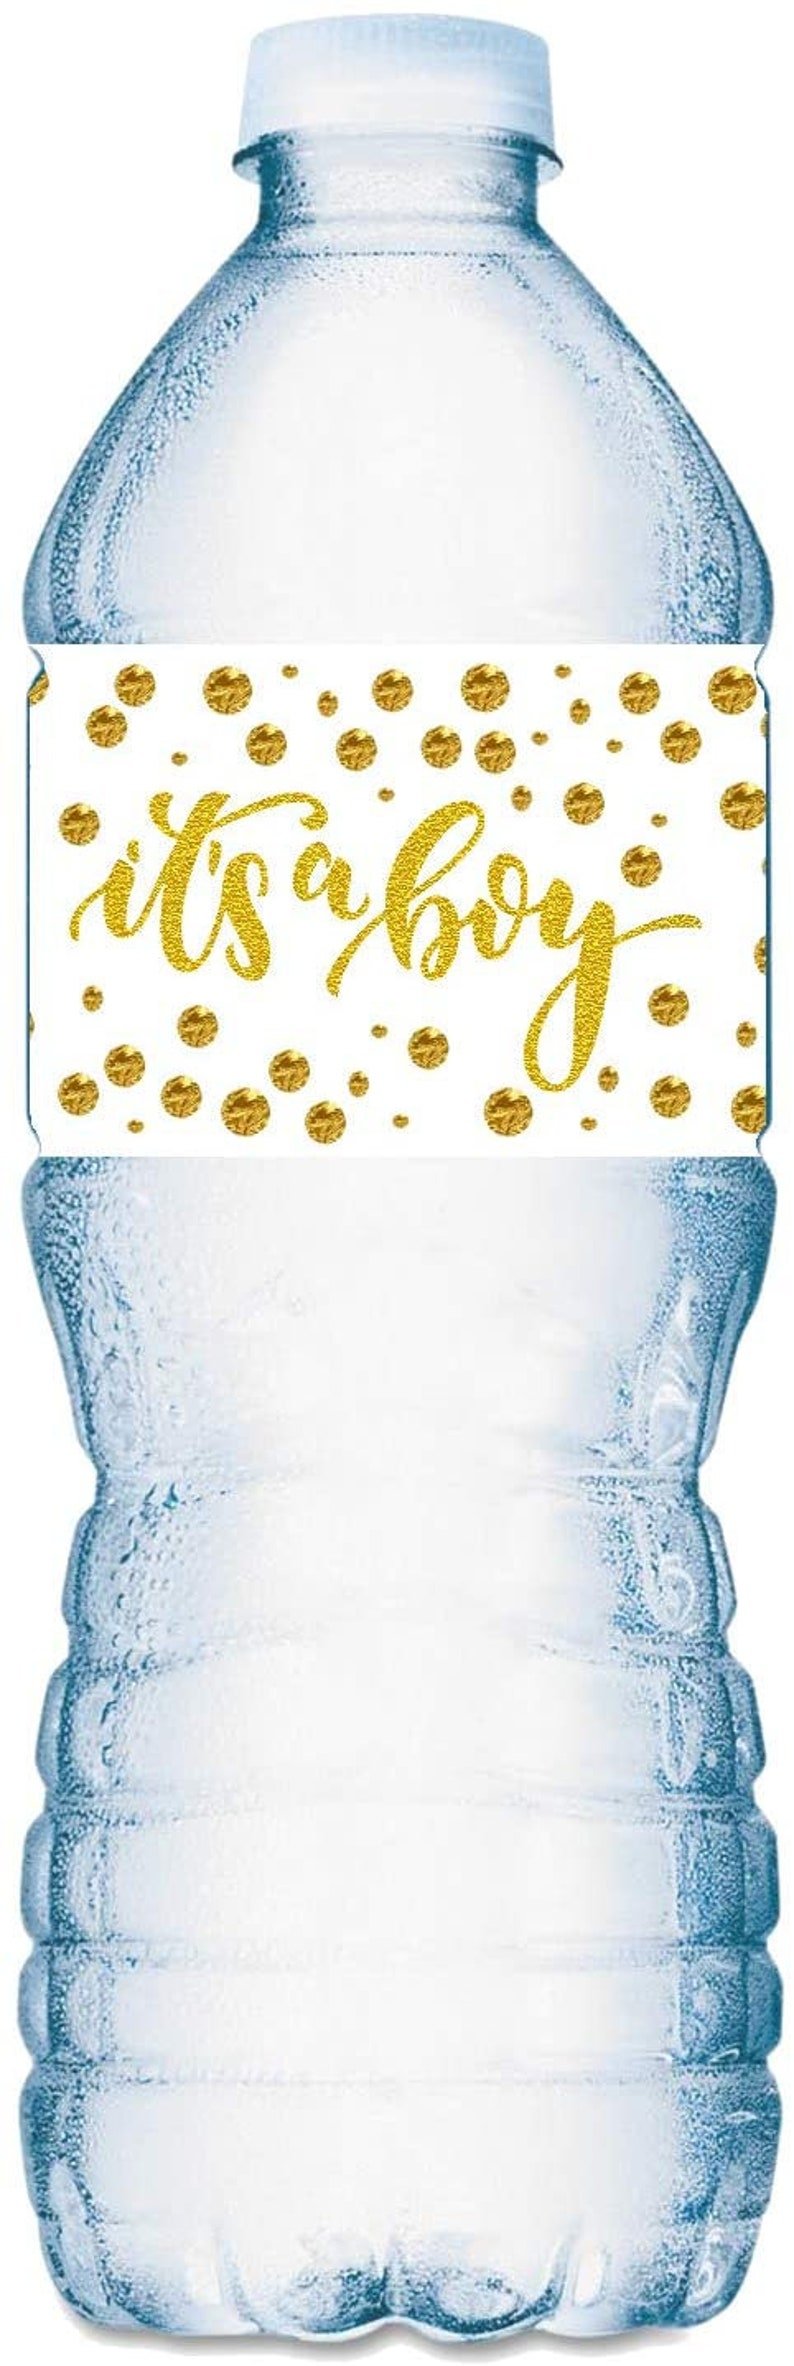 20 Gold  Oh Baby Its a Boy Water Bottle Labels; Baby Shower Set of 20 Waterproof Water Bottle Wrappers; Gold and White.